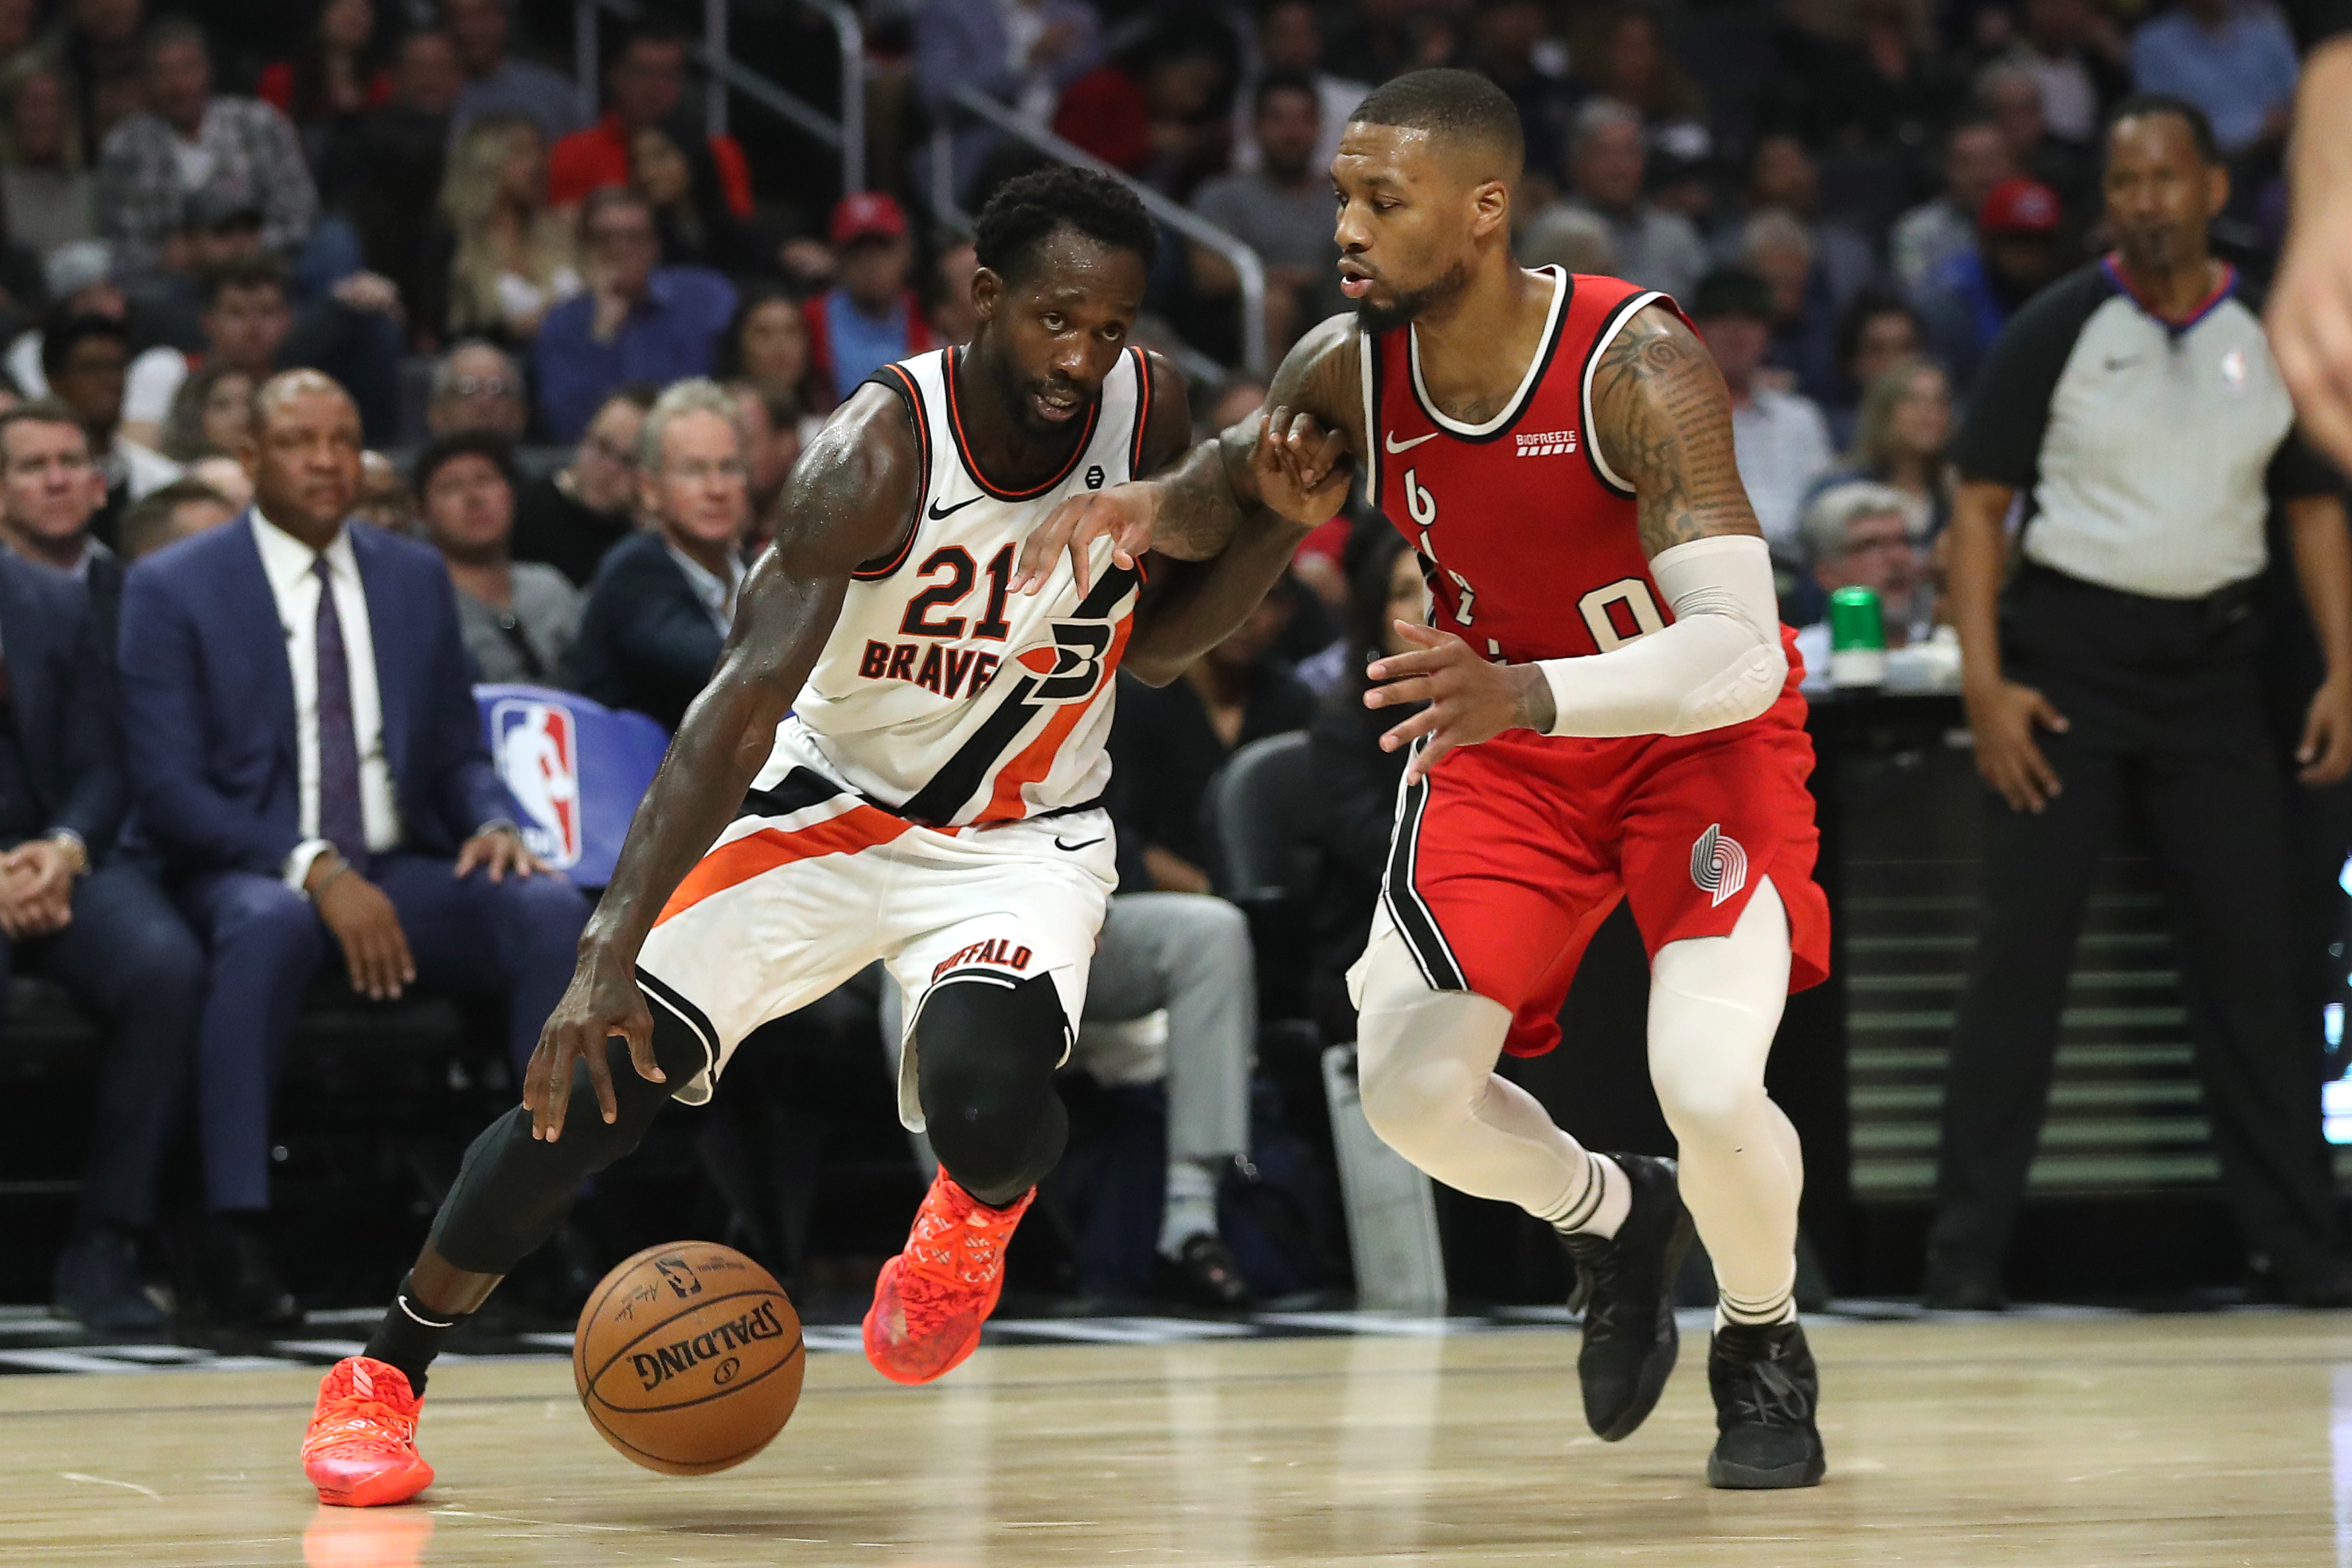 Damian Lillard Pat Beverley And Paul George Are Feuding On Instagram Insidehook